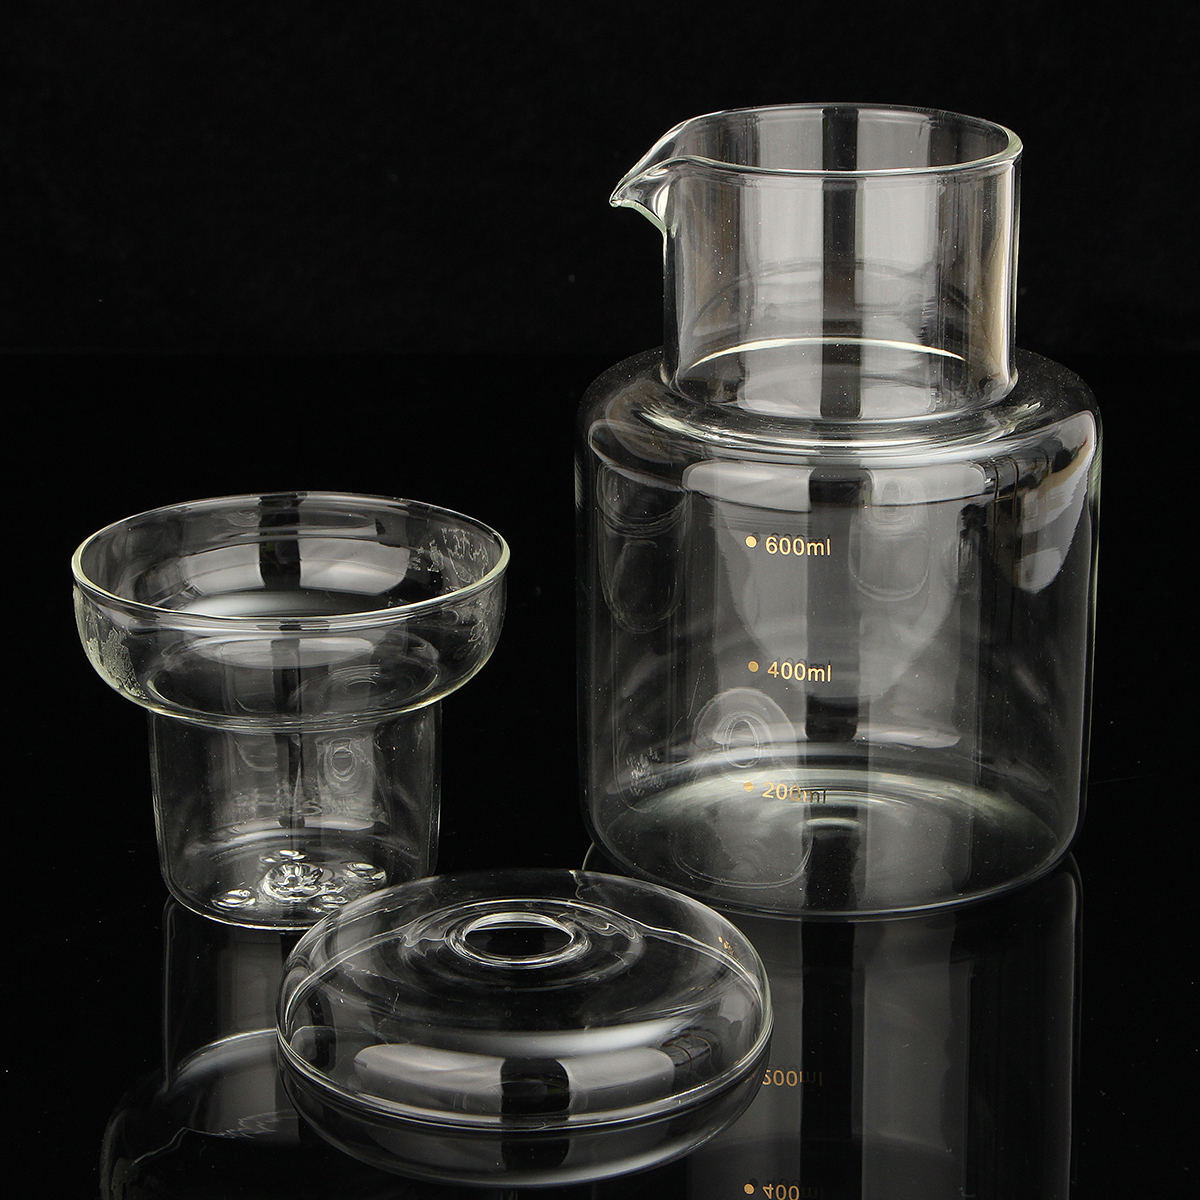 8 Cups Glass Manual Drip Coffee Machine Cold Drip Water Drip Coffee Maker Serve